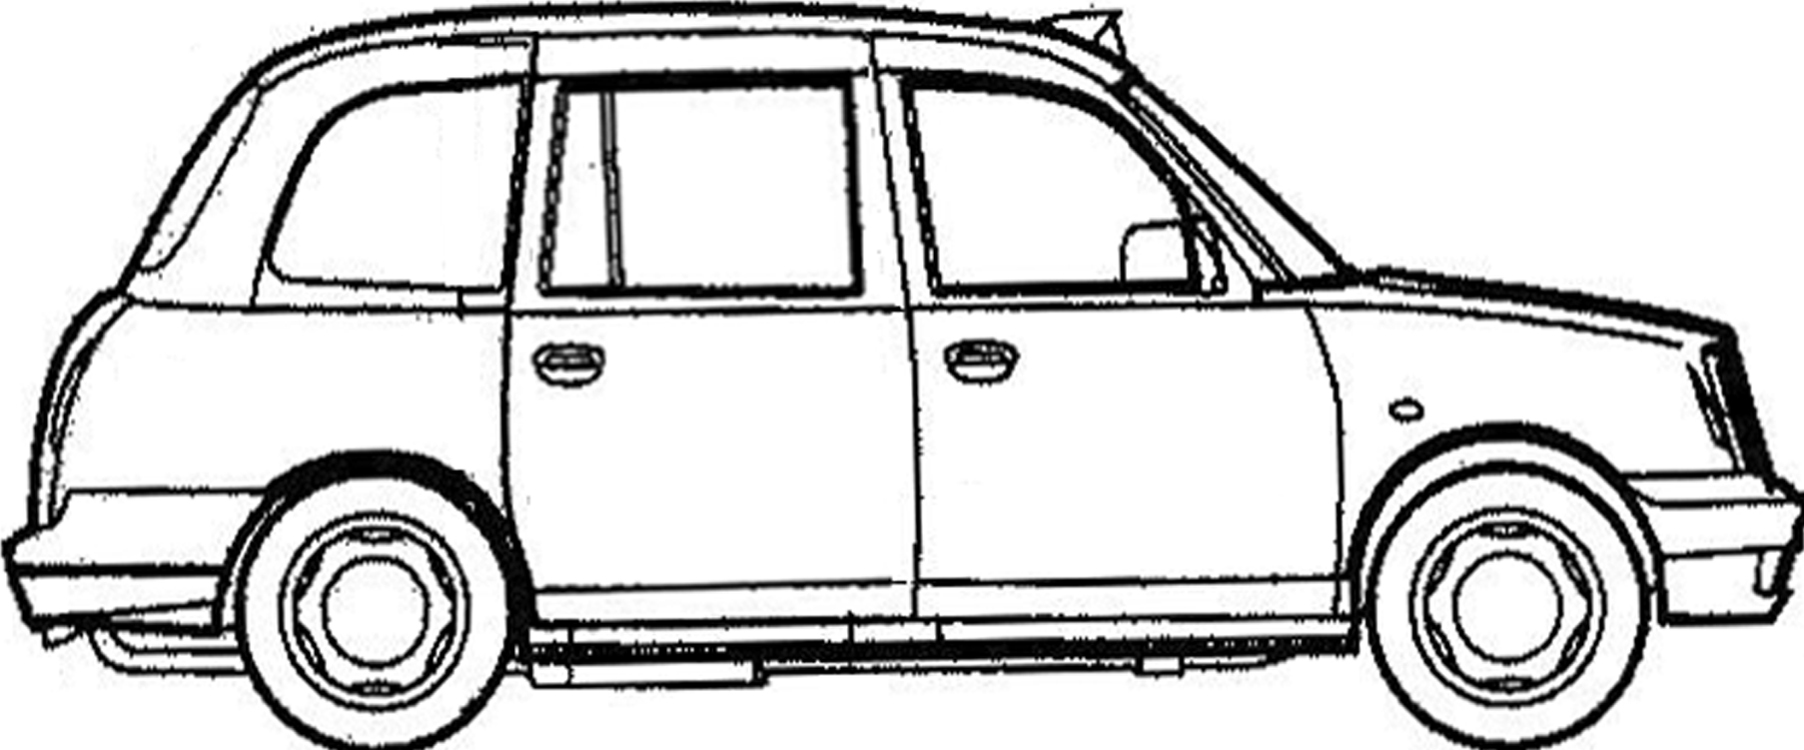 cab drawing taxi drawing free download on clipartmag drawing cab